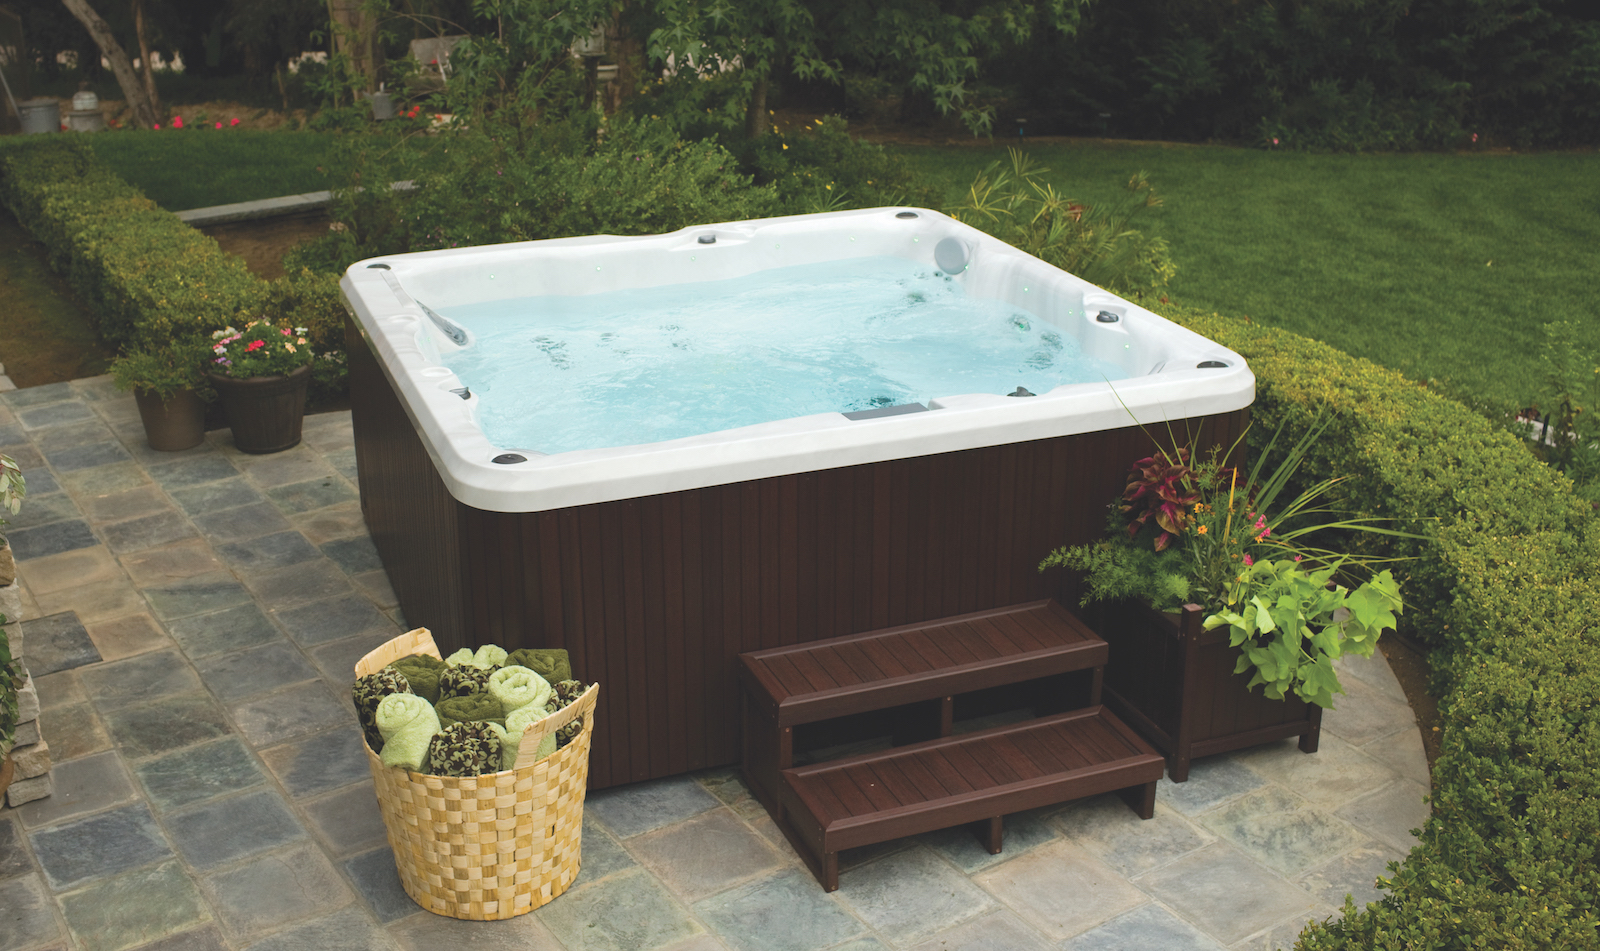 Jacuzzi Pool Service How To Drain And Clean Your Hot Tub Zagers Pool And Spa